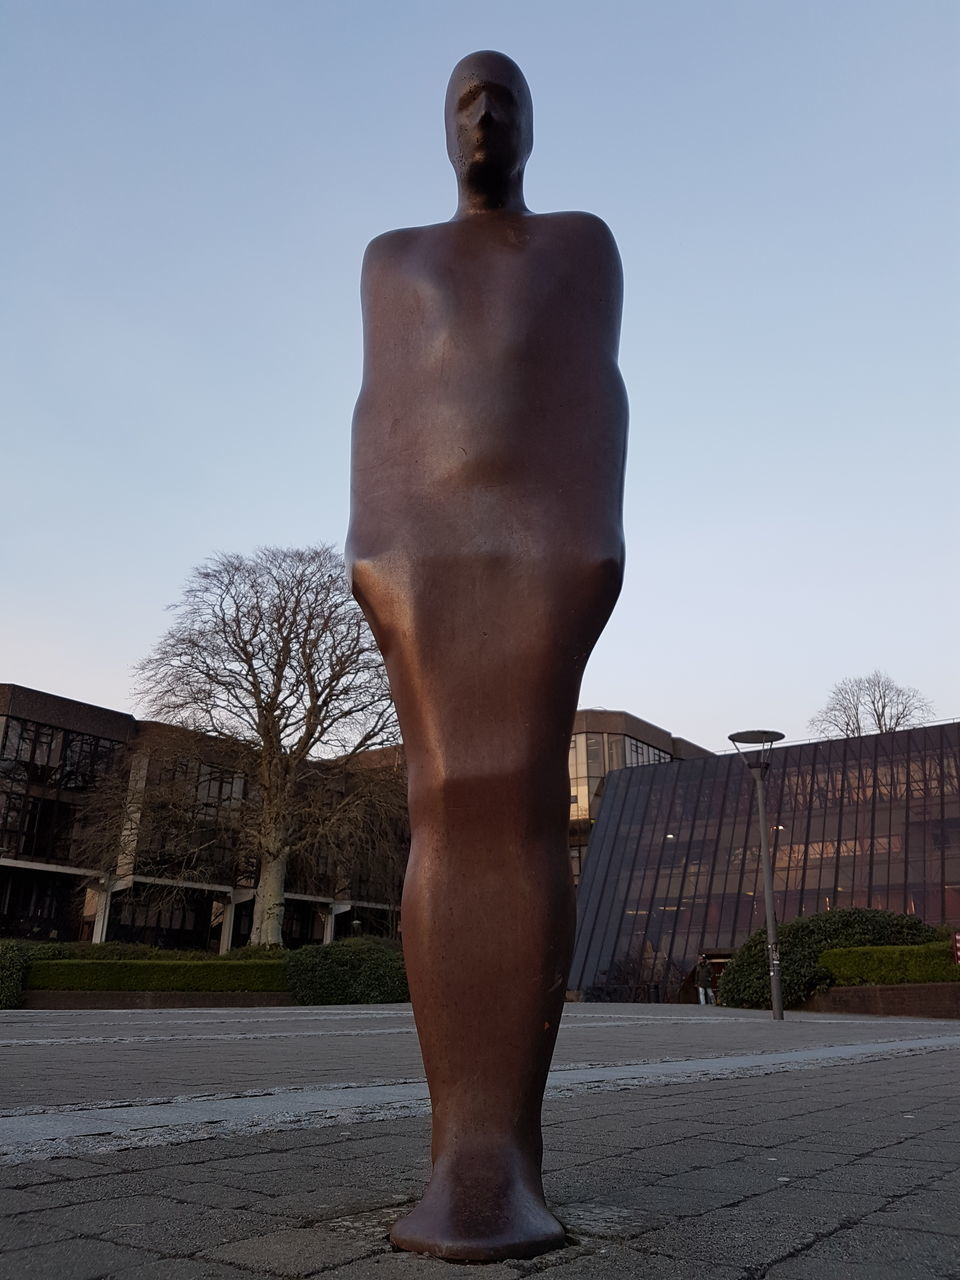 shirtless, statue, men, built structure, sculpture, building exterior, architecture, outdoors, clear sky, day, one person, standing, sky, young adult, people